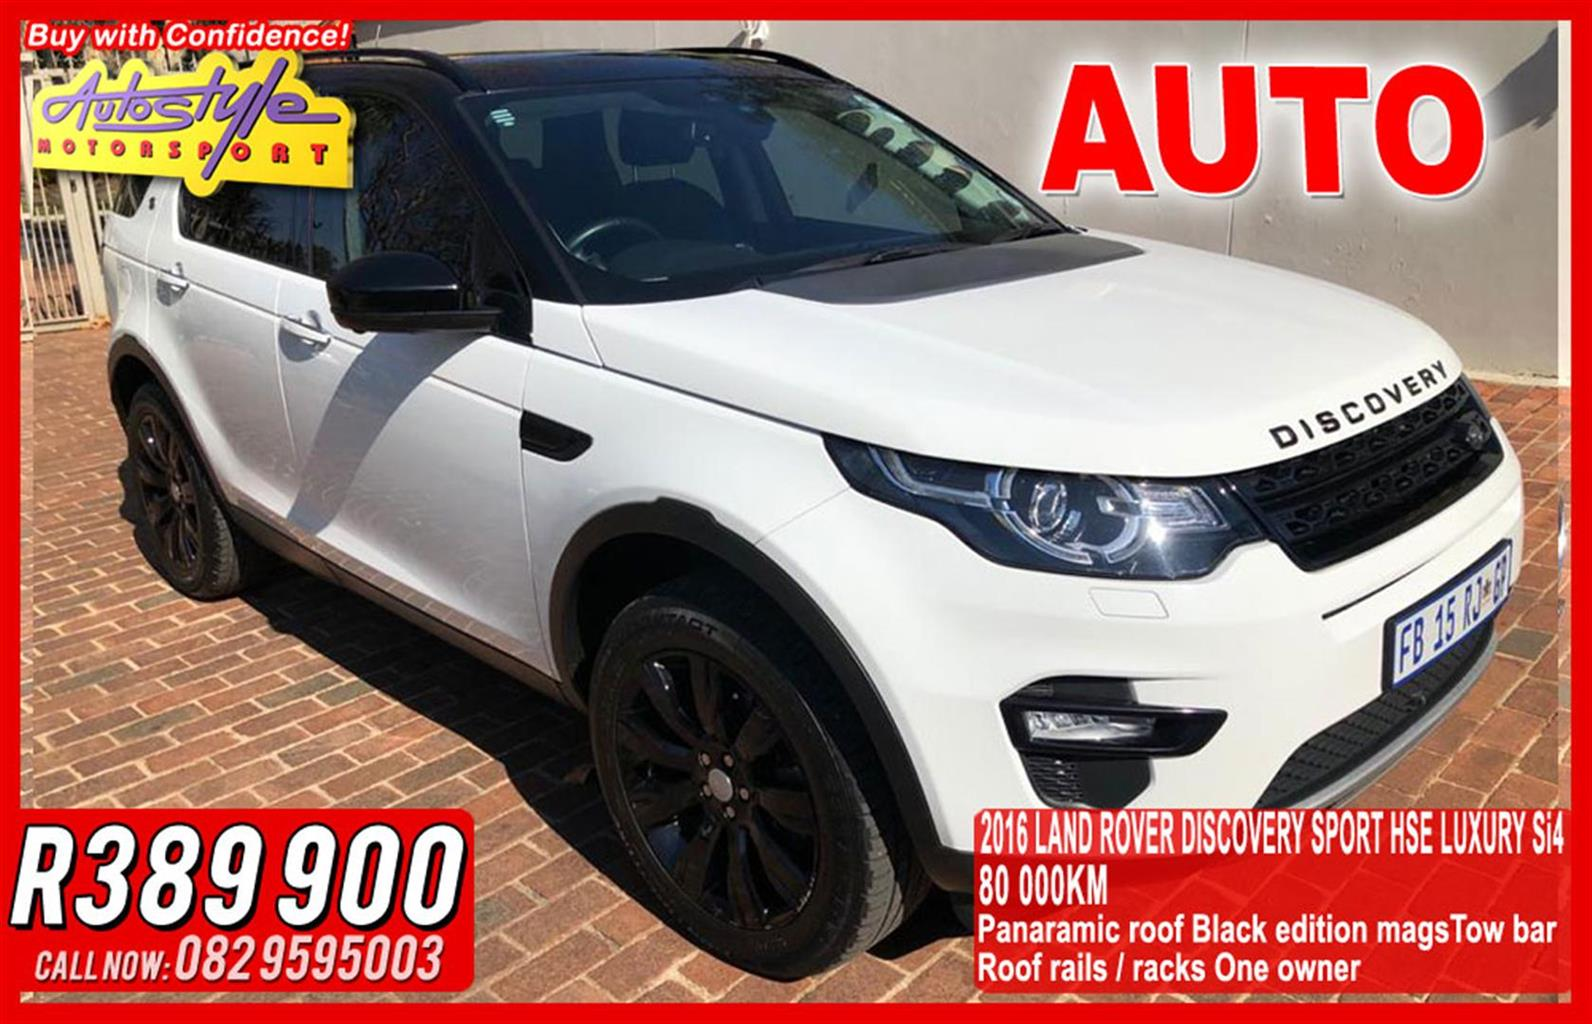 2016 Land Rover Discovery Sport DISCOVERY SPORT 2.0 Si4 HSE LUX